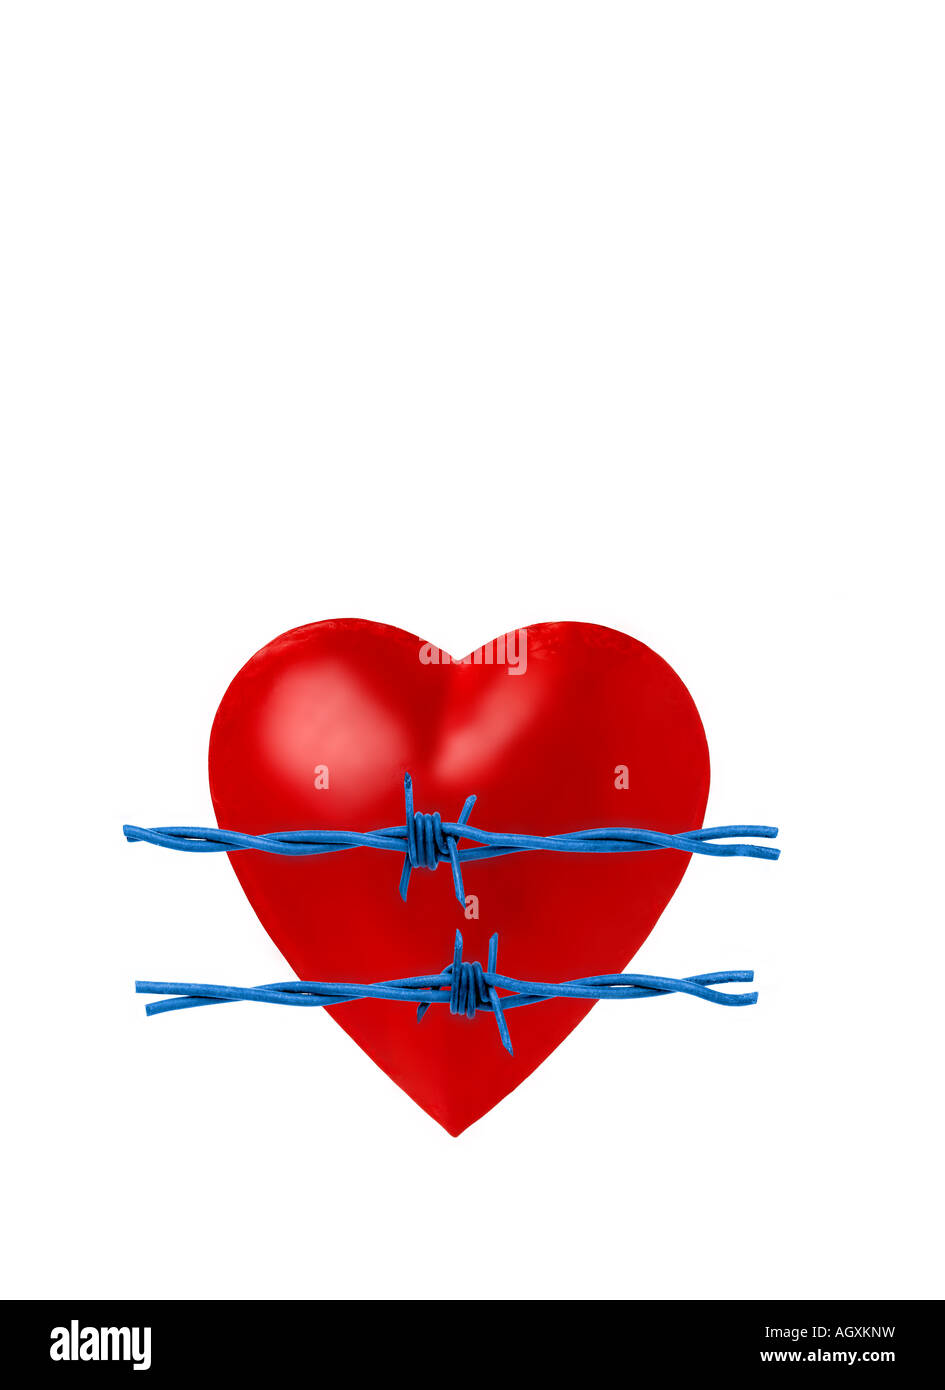 barbed wire heart Stock Photo: 14300532 - Alamy